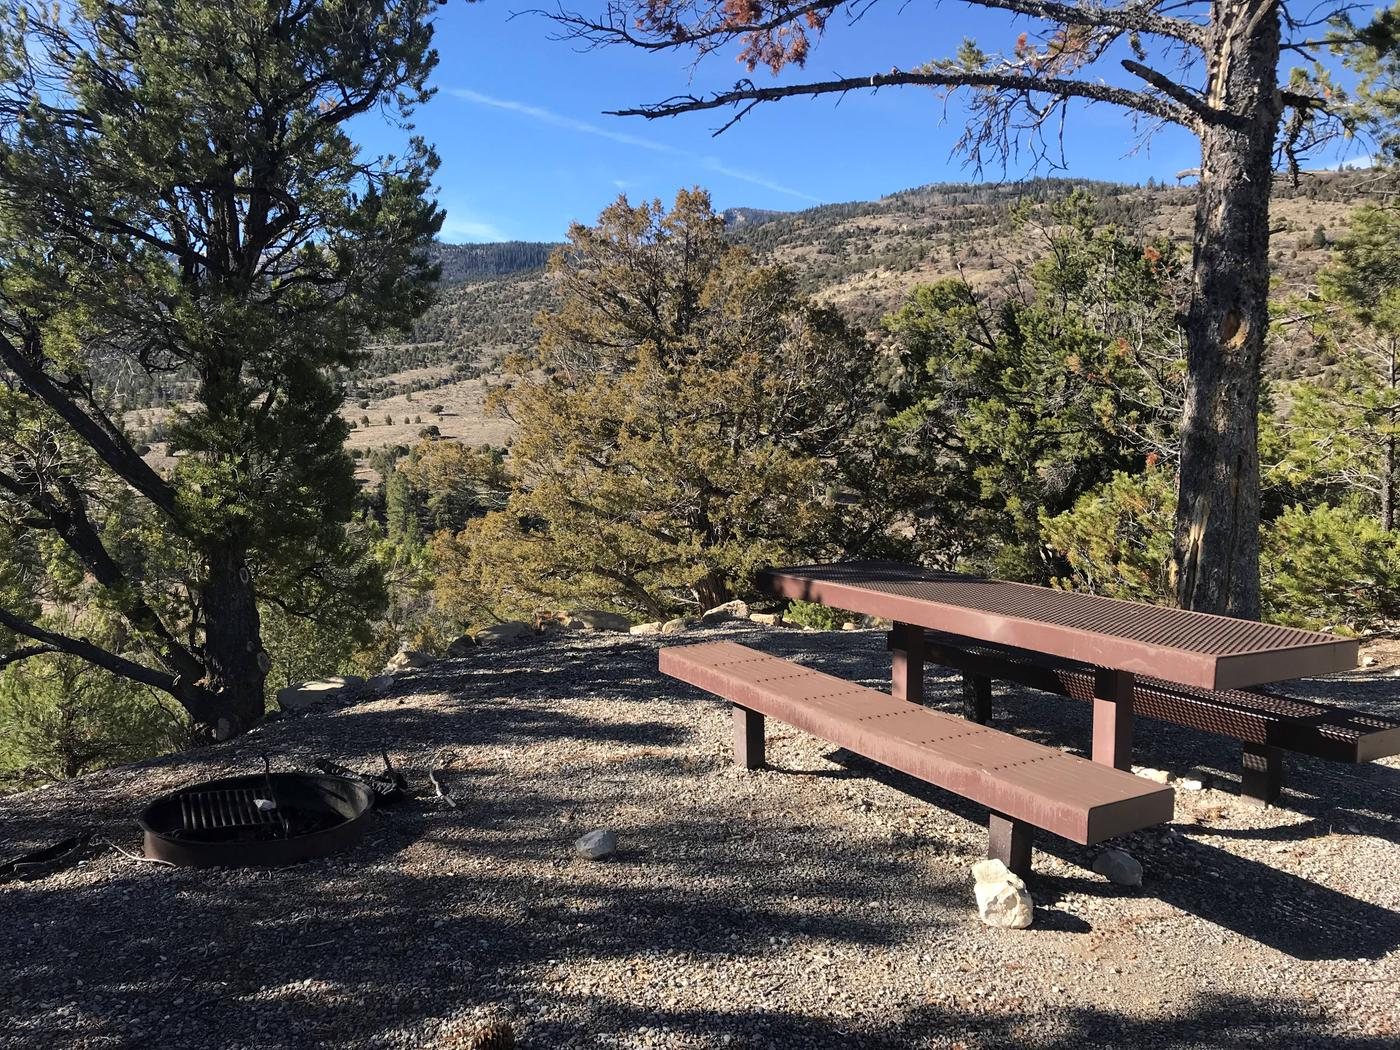 Joes Valley Campground Site 15